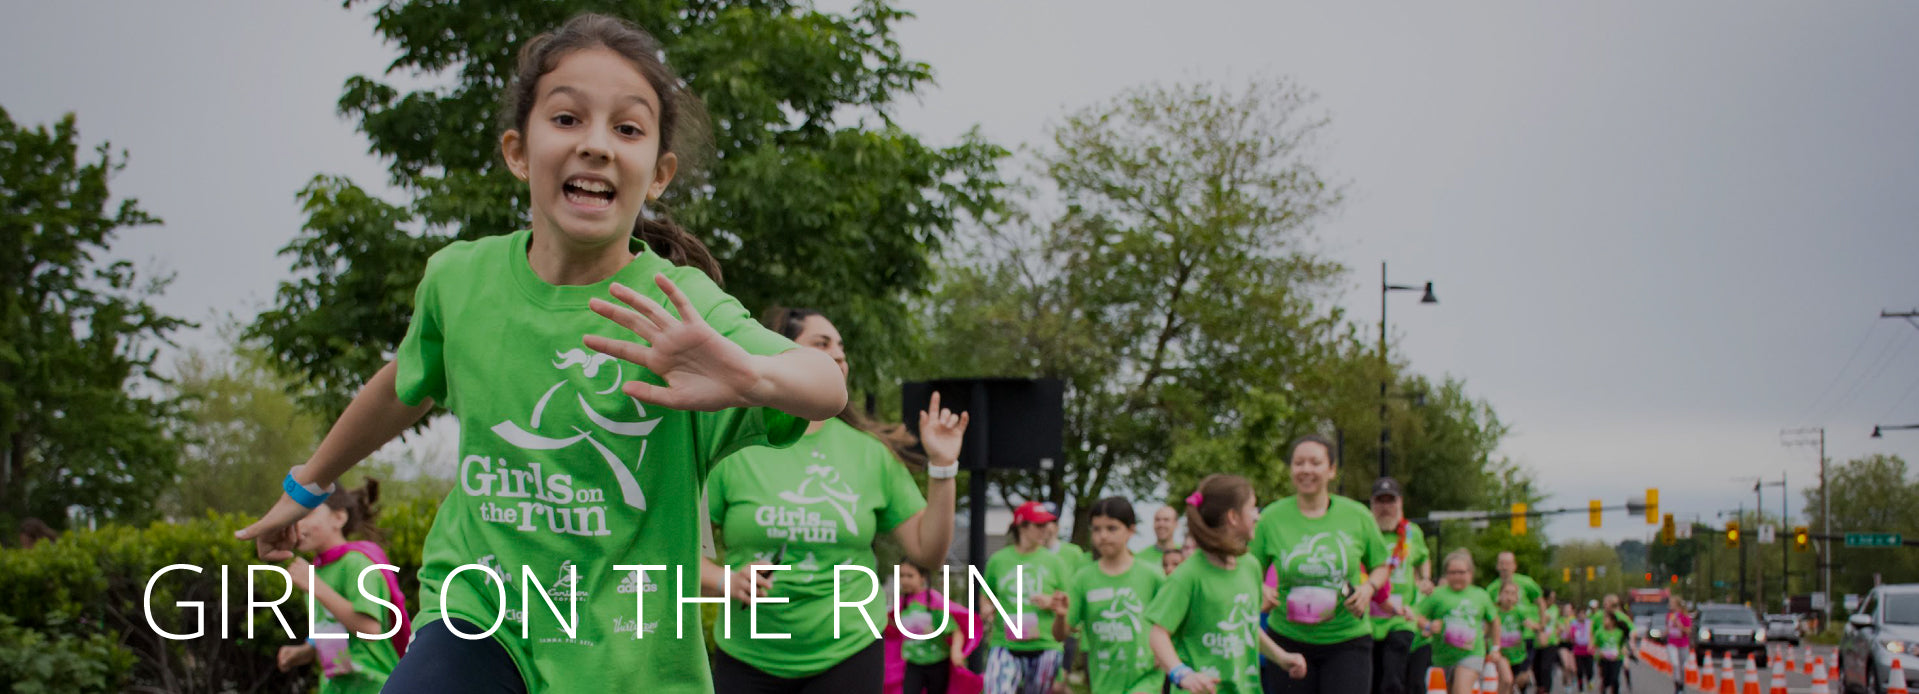 Girls on the Run of Puget Sound